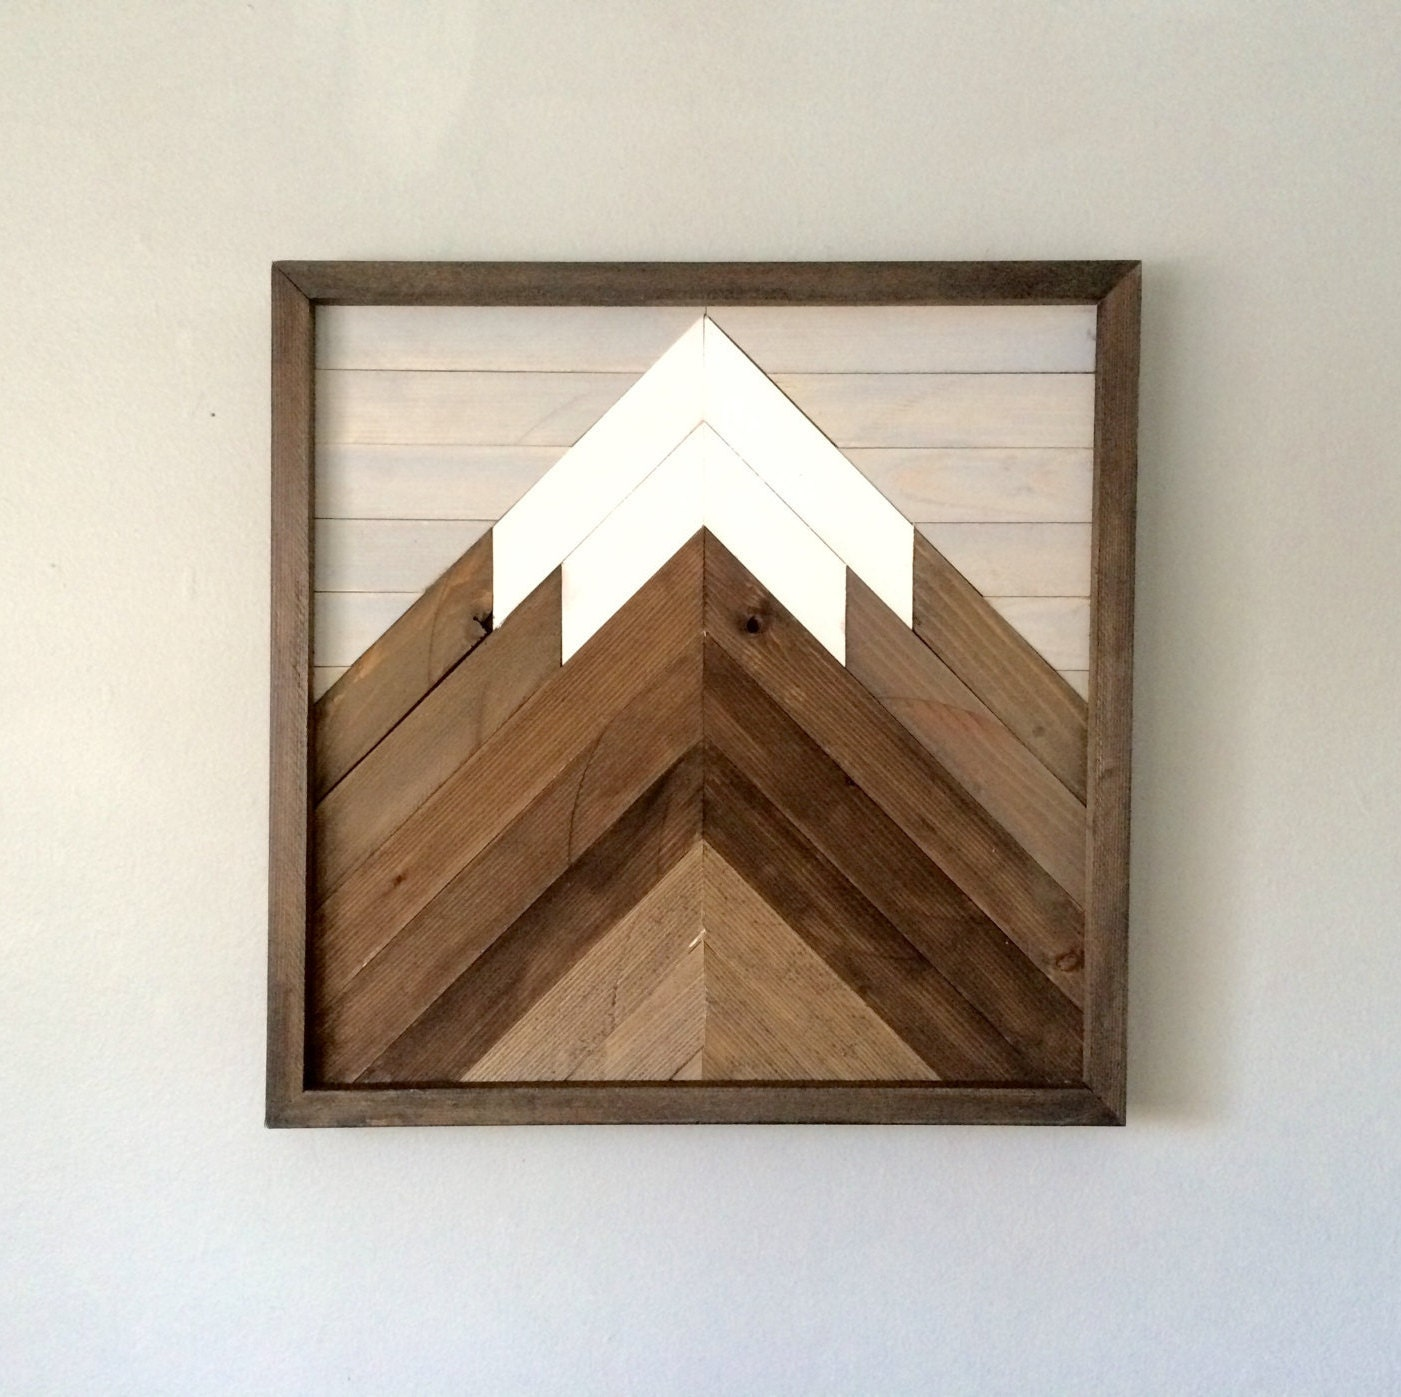 Reclaimed wooden wall art mountain scenegallerywall modern zoom amipublicfo Choice Image